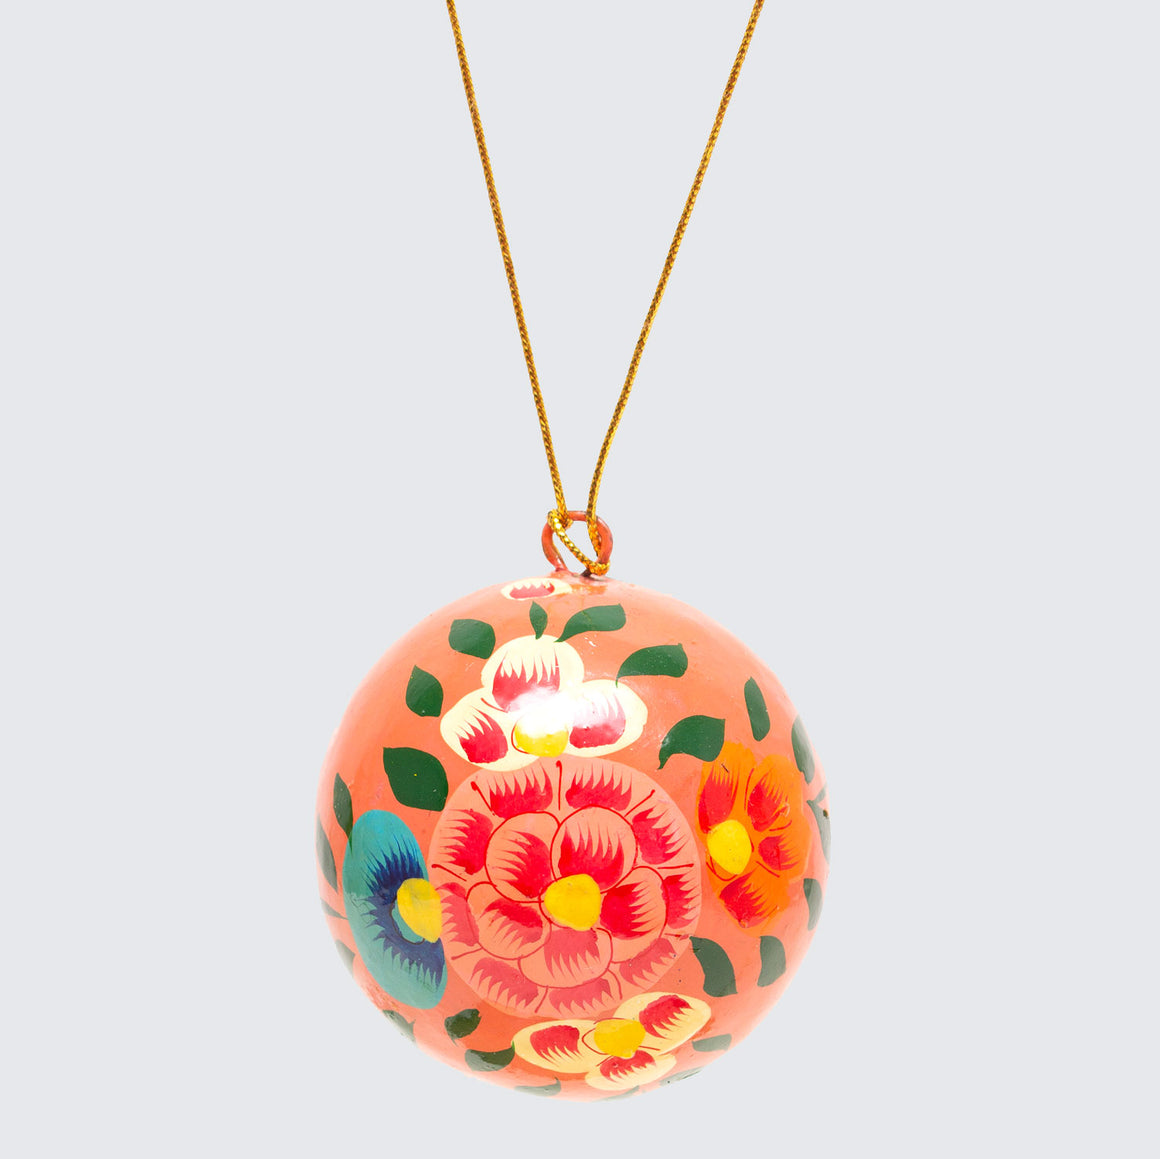 Indian Hand Painted Kashmir Bauble Decoration 'Pink Floral'